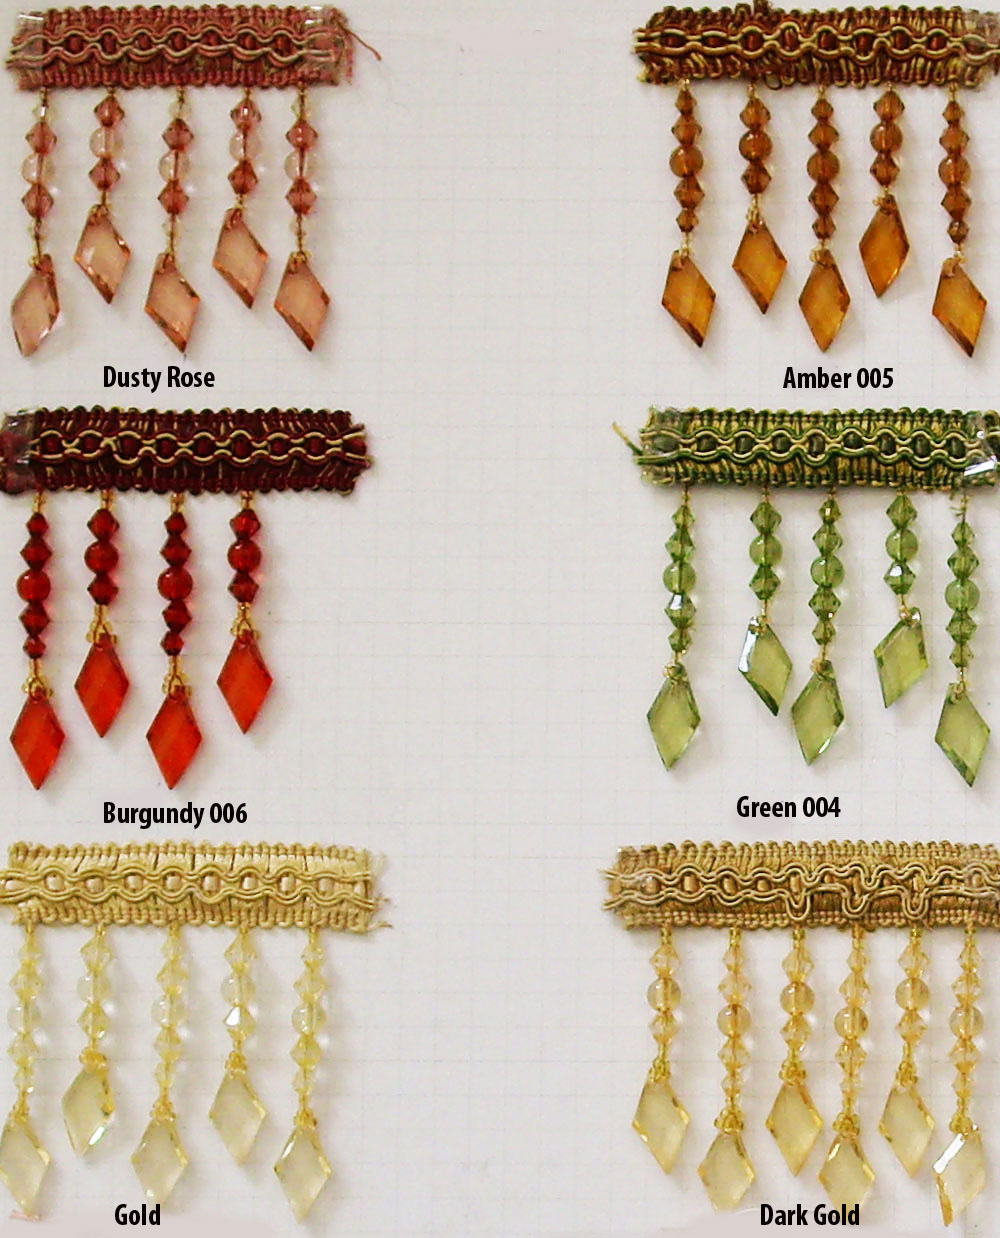 This is a beautiful Crystal Beaded fringe for any type of sewing Expo International Joanne Beaded Teardrop Fringe Trim Embellishment, Yard, Silver by Expo International Inc.